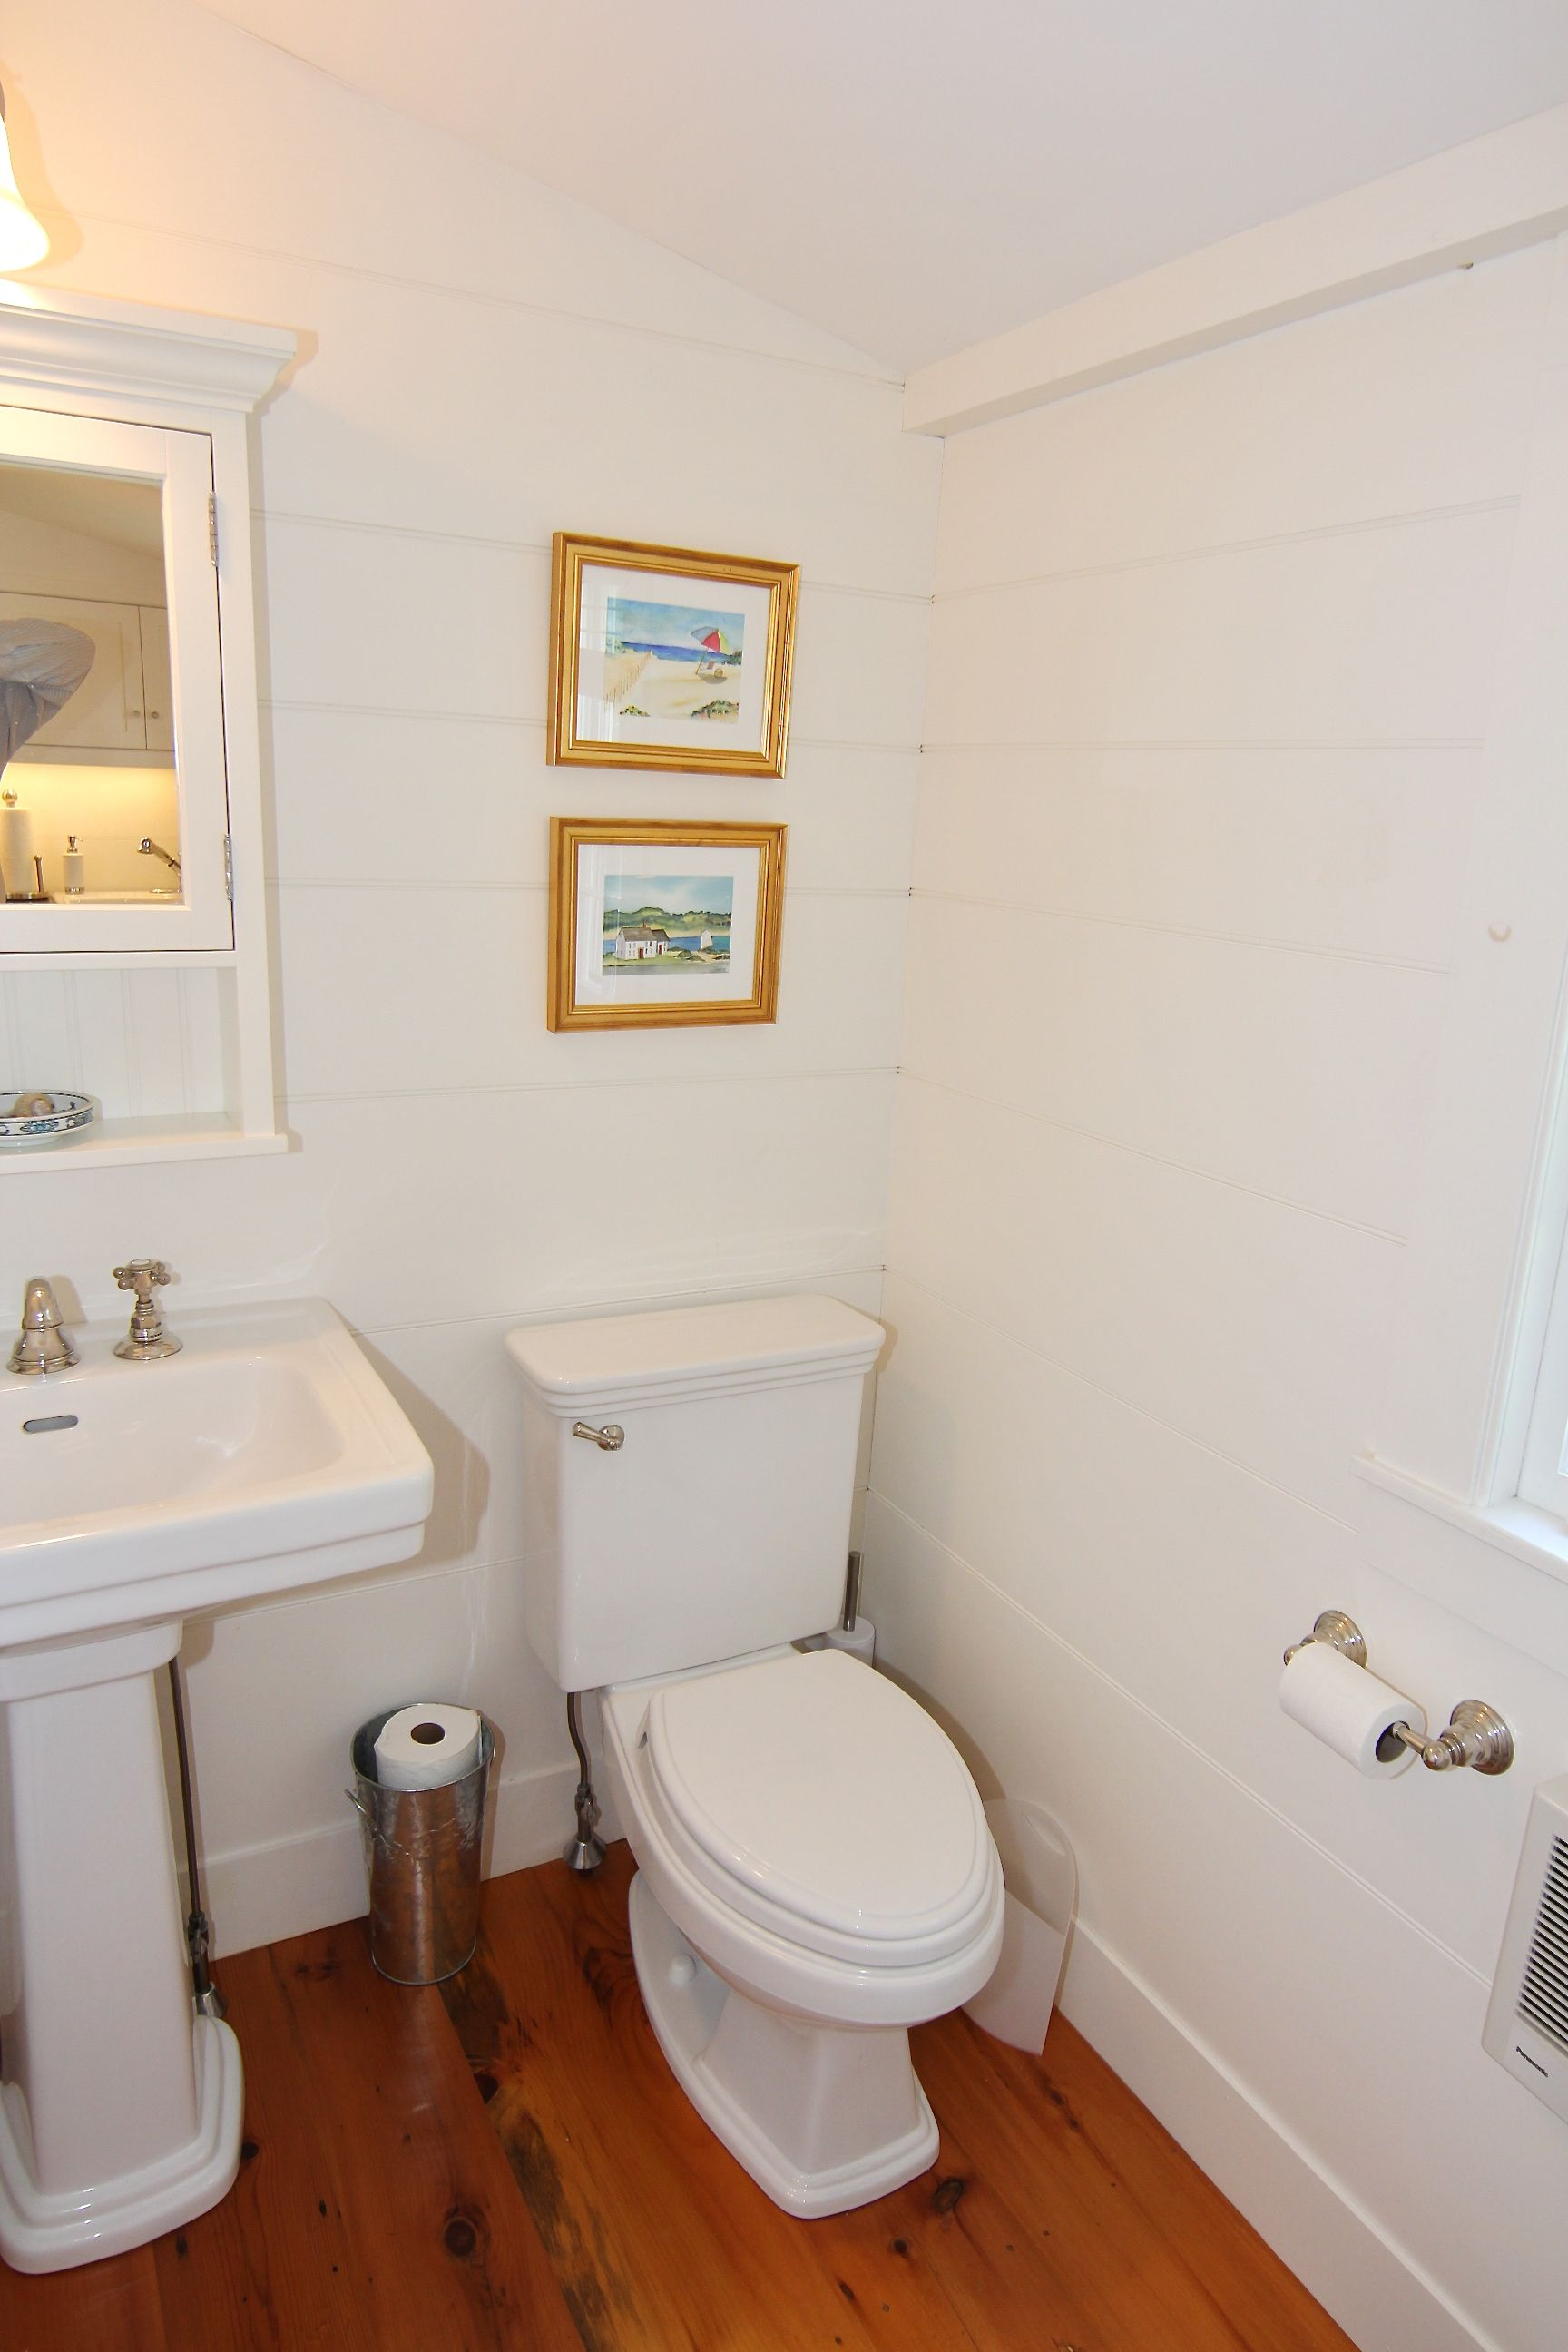 Additional photo for property listing at 1 Pierce Lane  Edgartown, Massachusetts,02539 United States